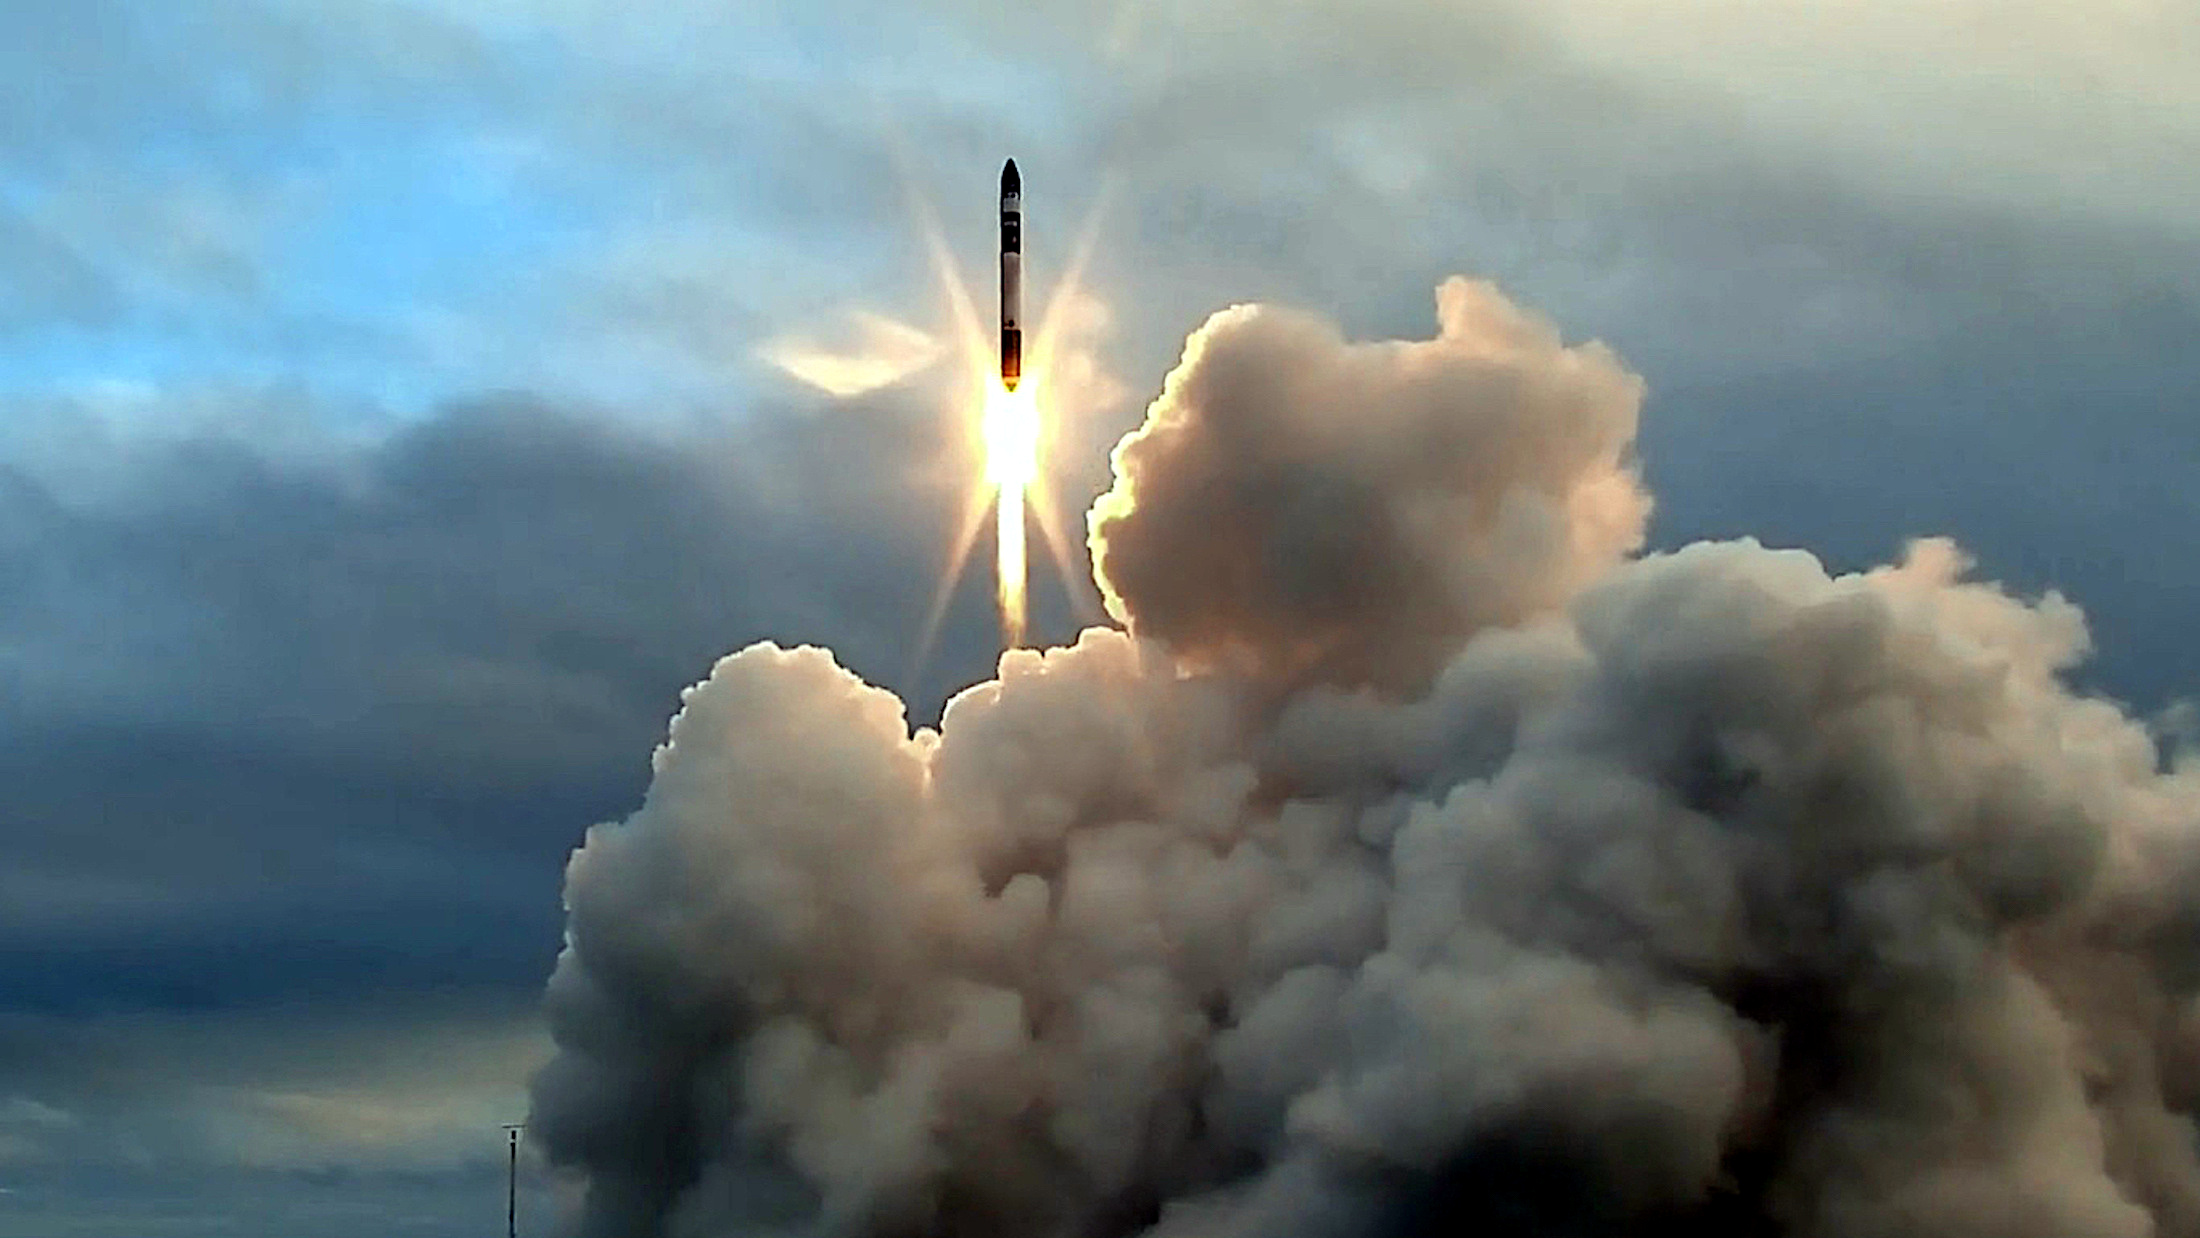 A supplied image of the launch and maiden flight of a battery-powered, 3-D printed rocket built by Rocket Lab, a Silicon Valley-funded space launch company, at New Zealand's remote Mahia Peninsula, May 25, 2017.